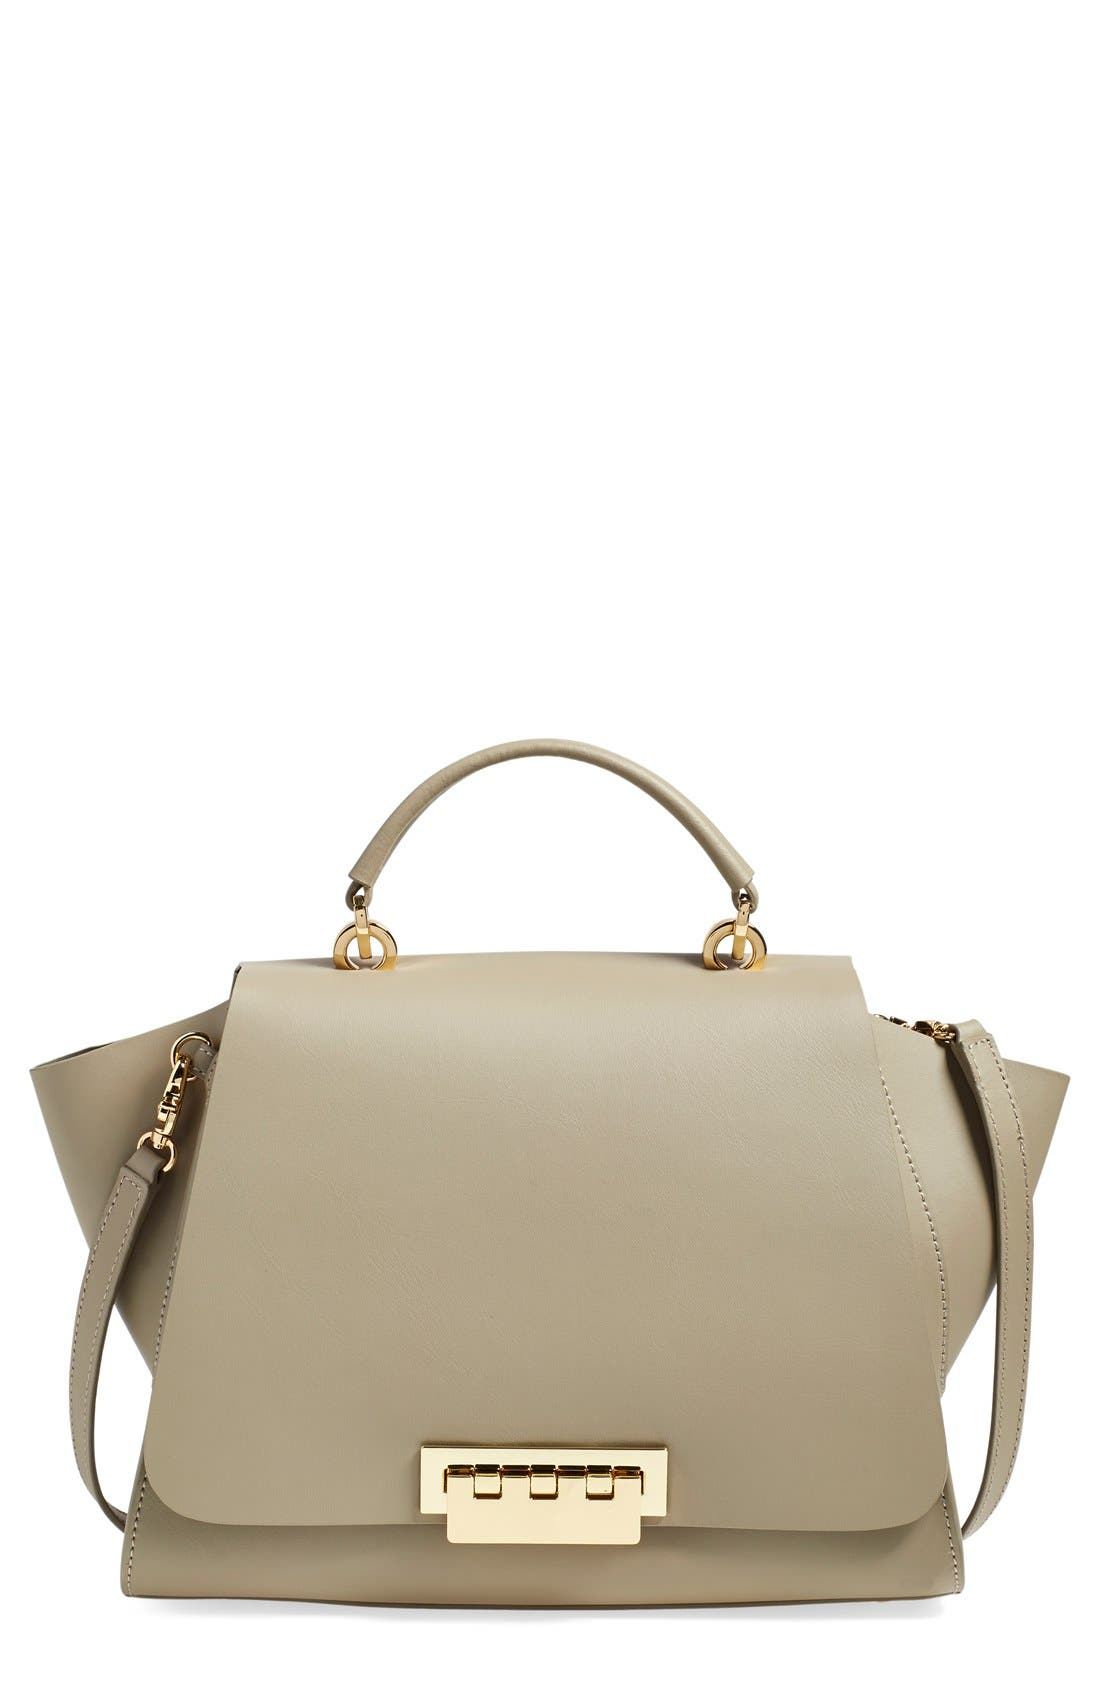 'Eartha' Soft Top Handle Satchel,                         Main,                         color, Beige